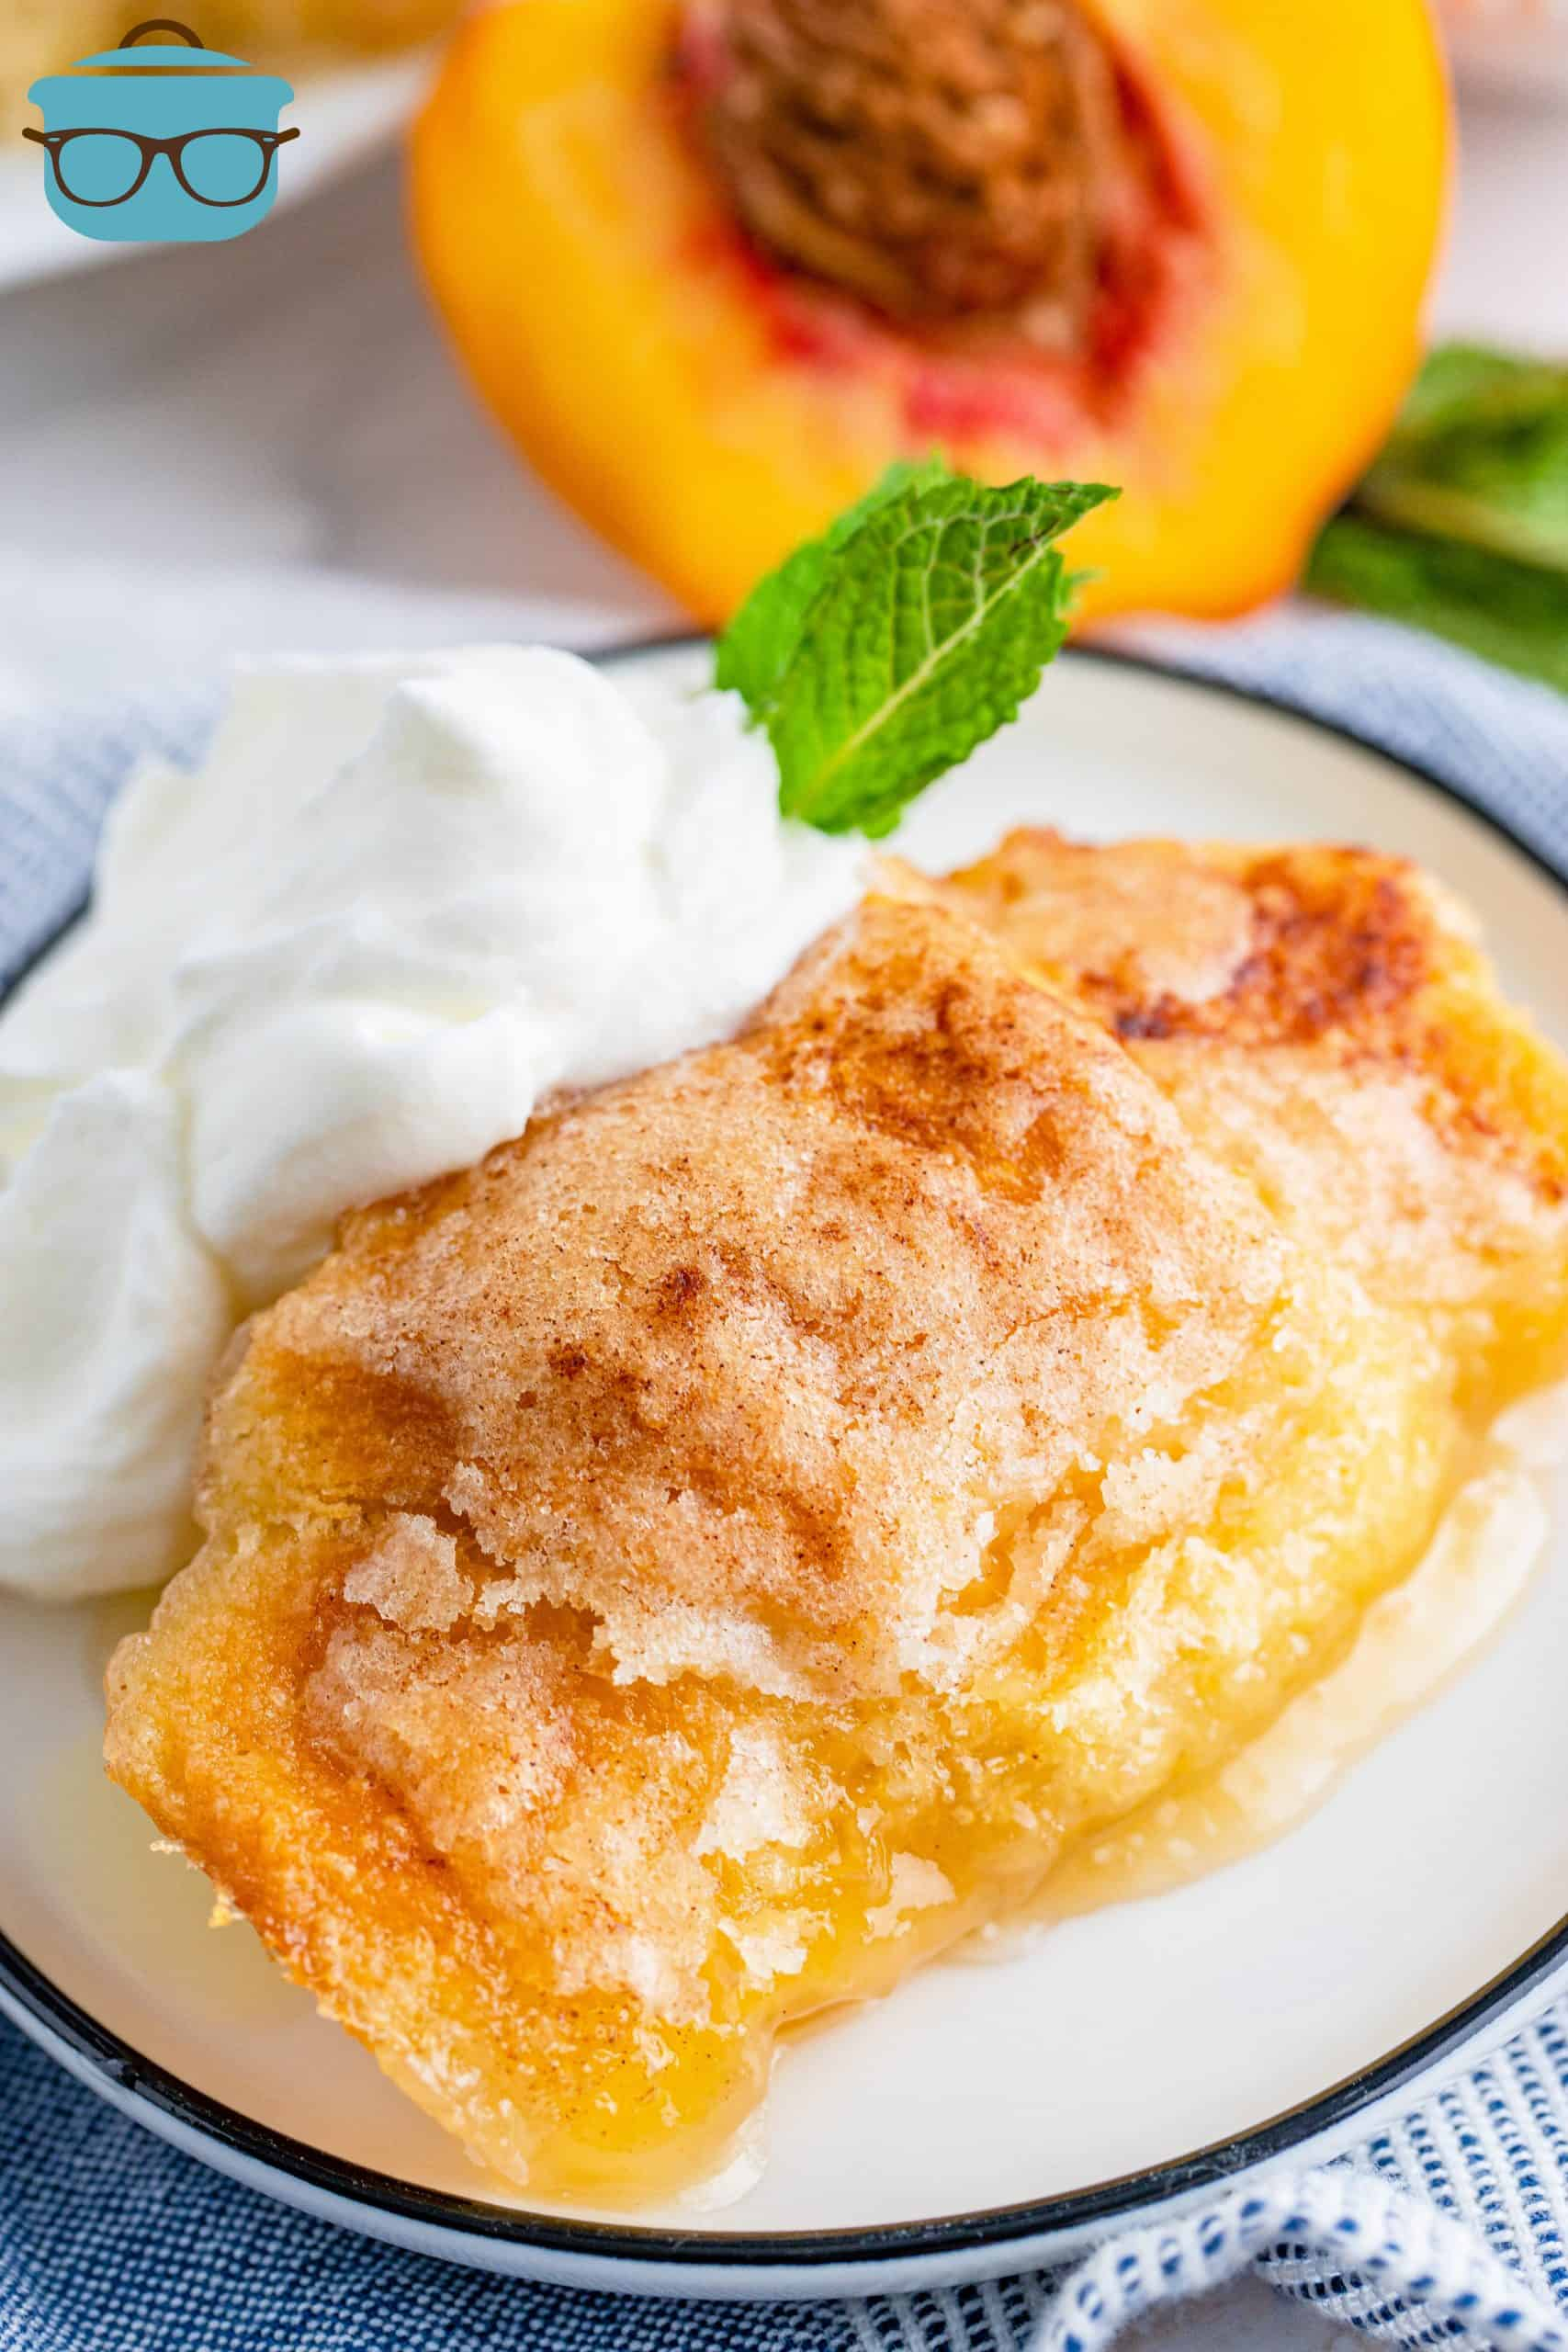 One Peach Dumpling on plate with whipped cream.